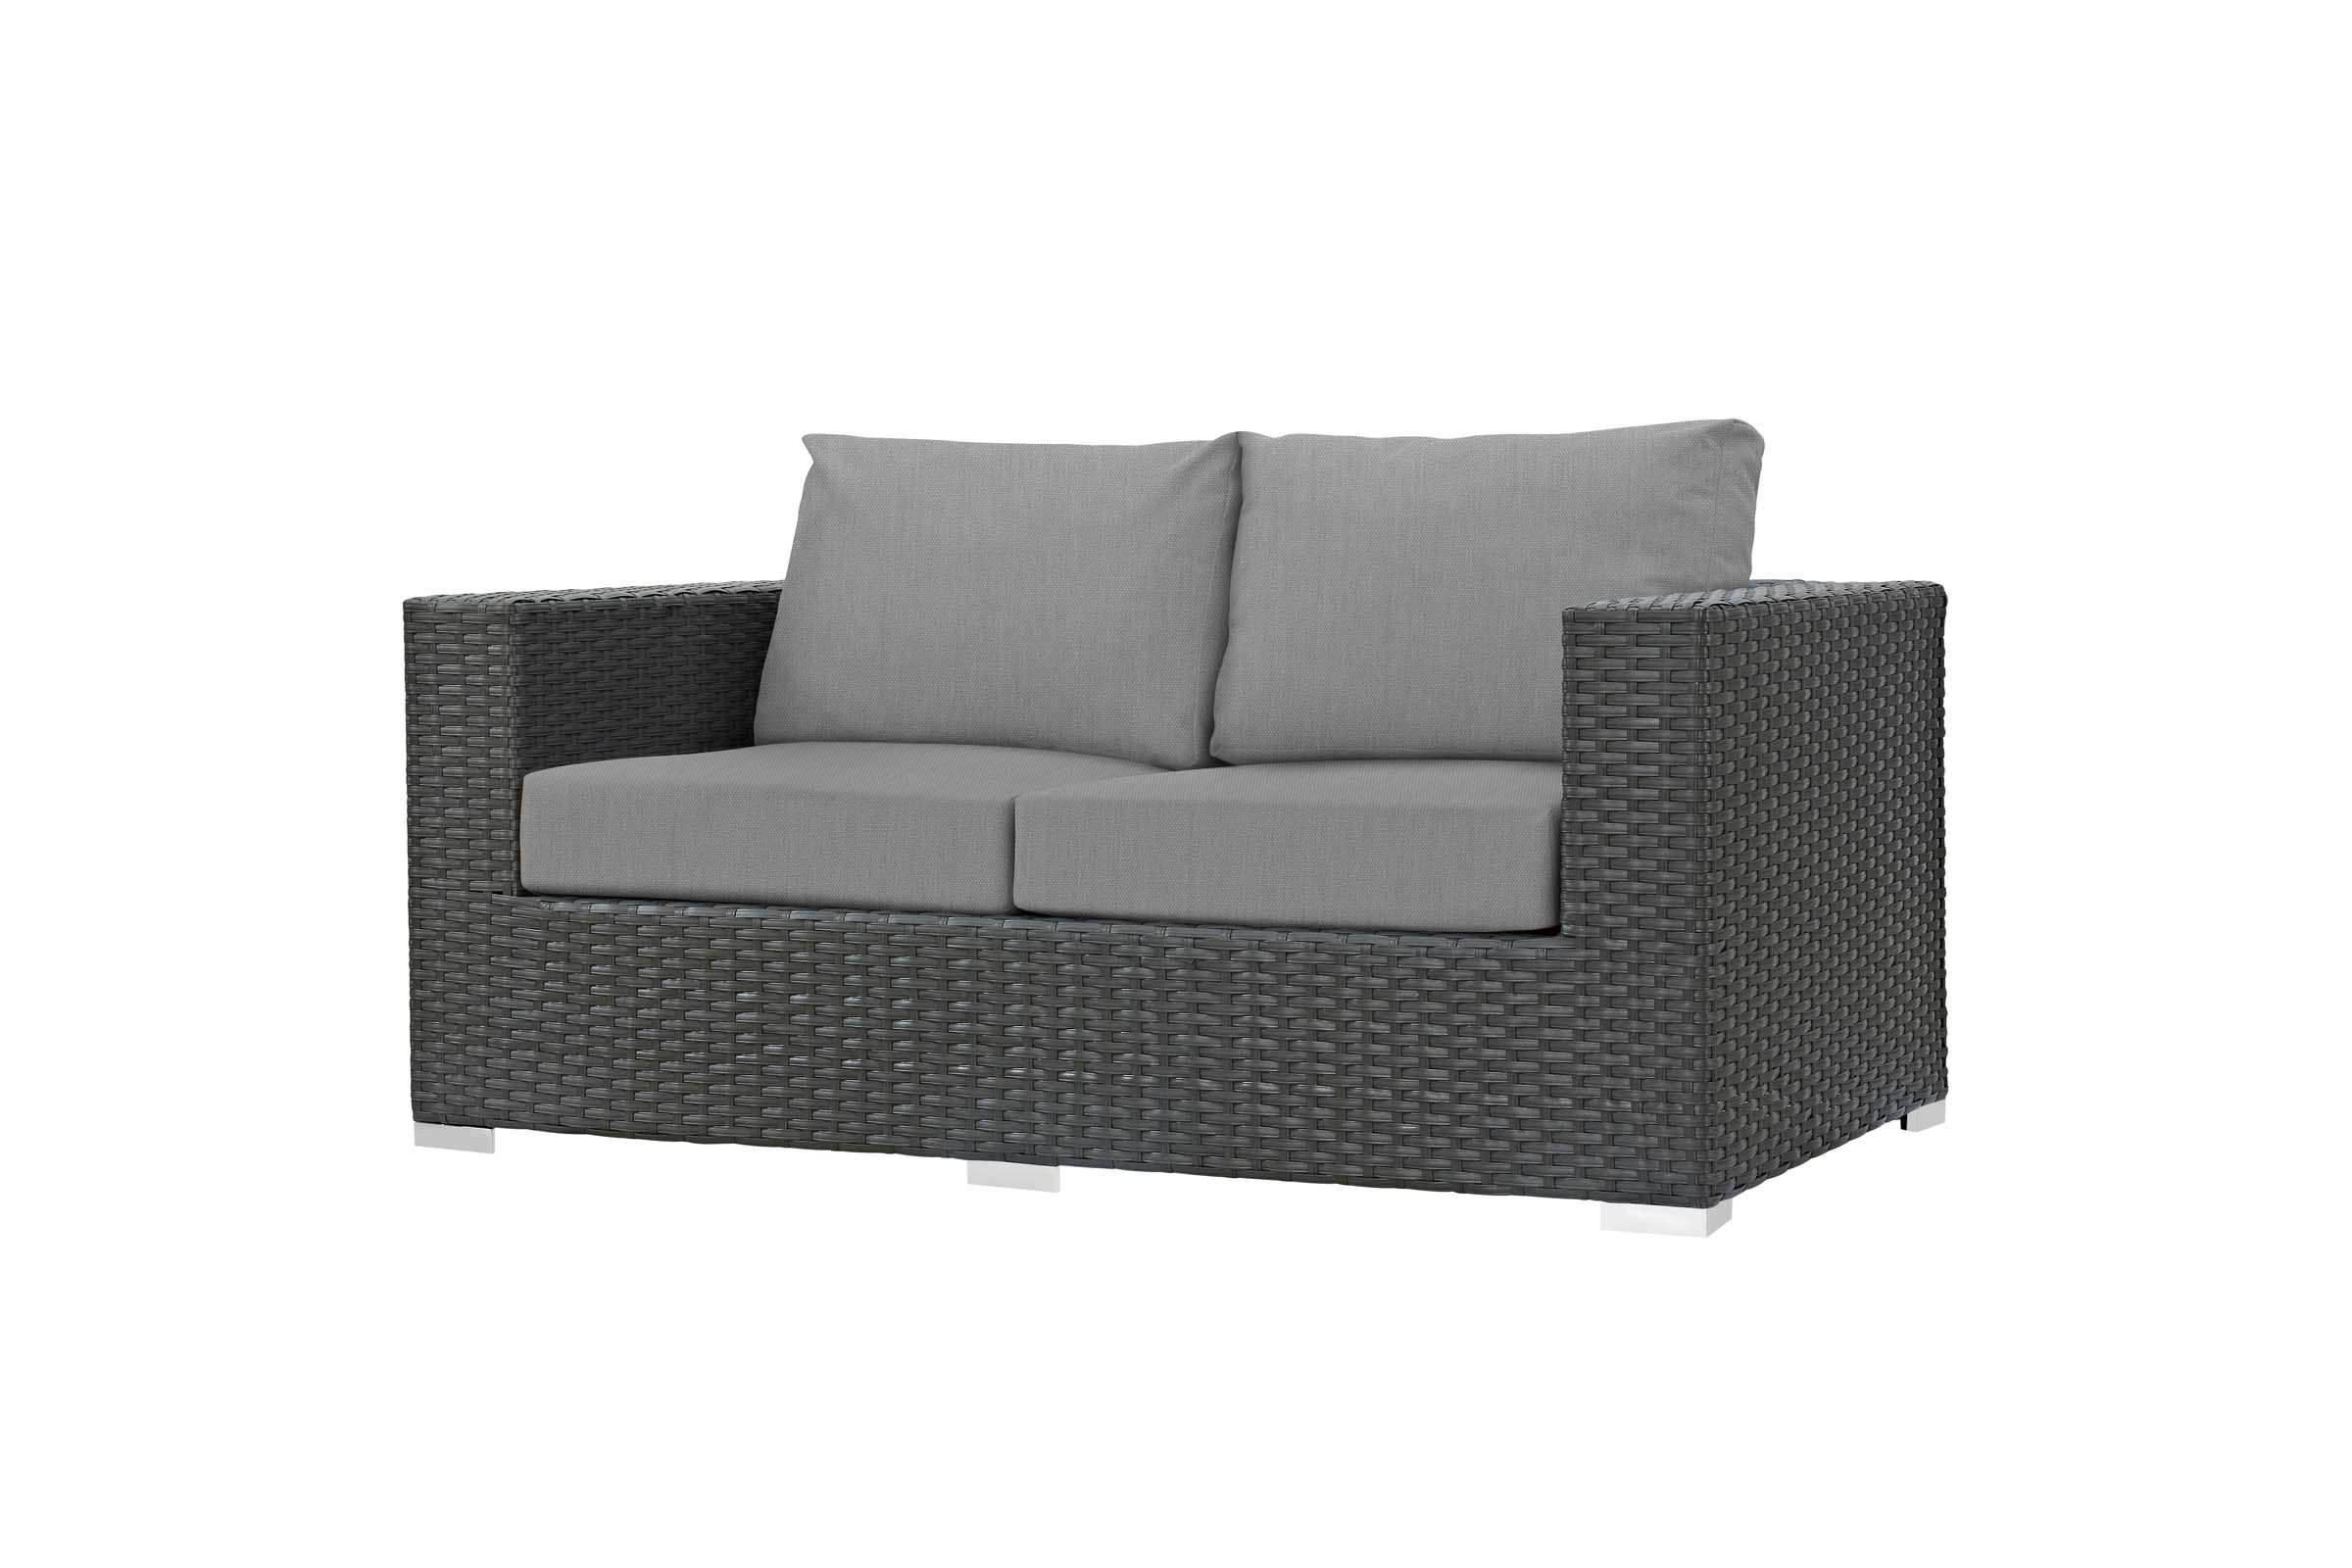 Falmouth Loveseats With Cushions Intended For Well Known Sojourn Outdoor Patio Wicker Rattan Sunbrella¨ Loveseat In (View 8 of 20)